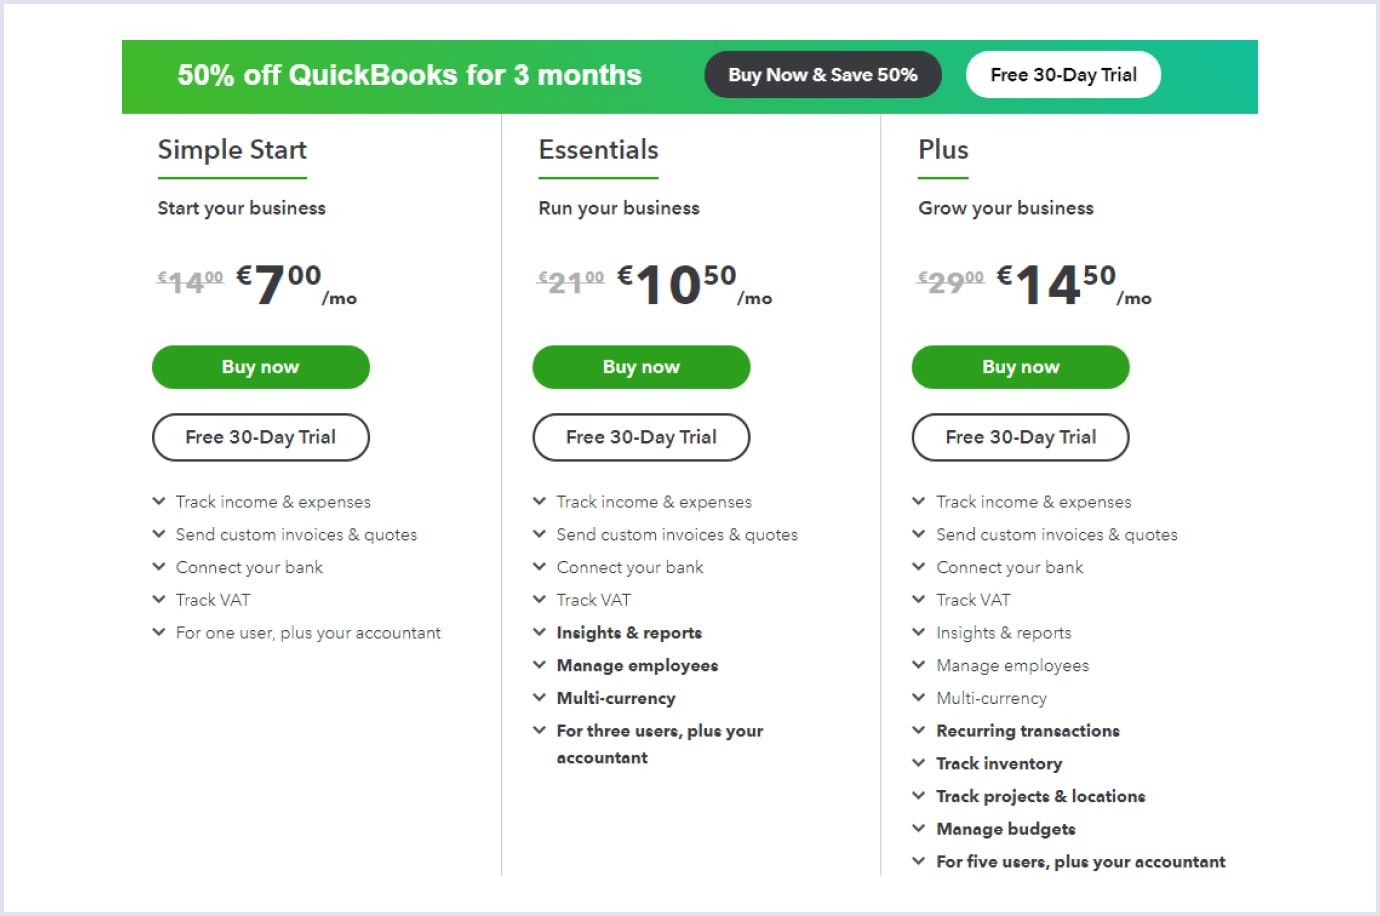 Per storage pricing strategy for SaaS by QuickBooks